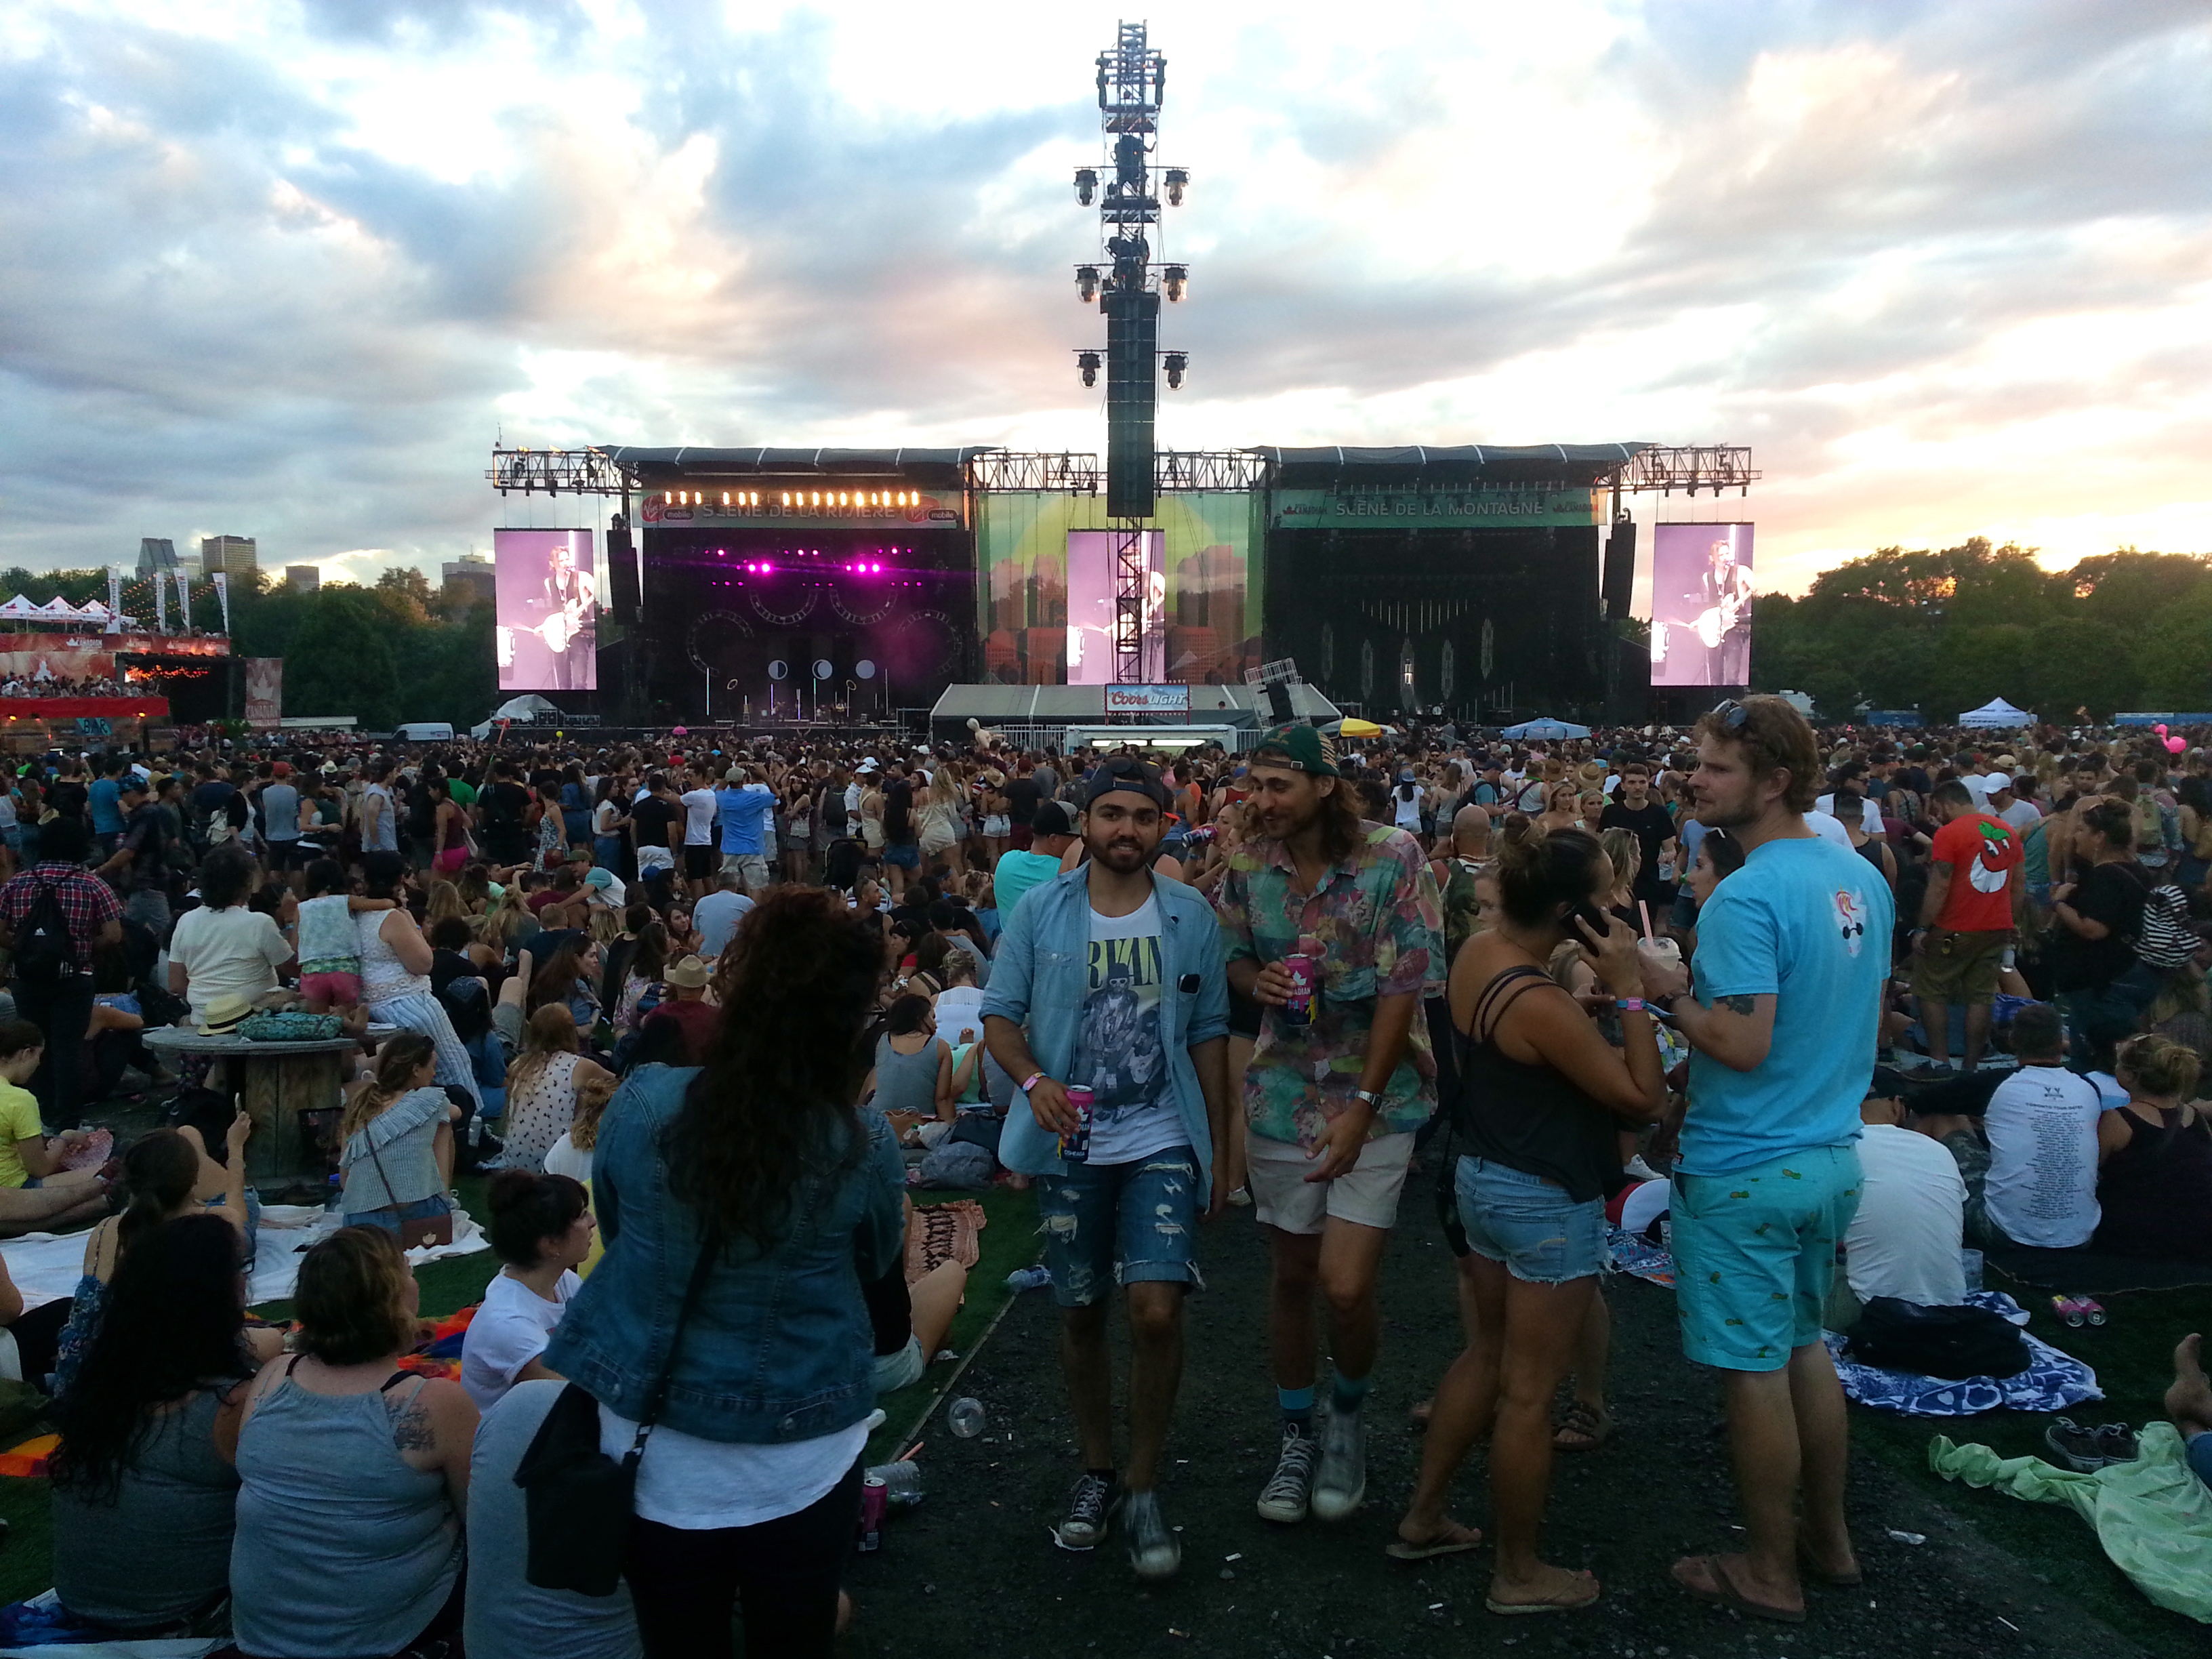 Ahhh, more breathing room! And a pretty good look at the side-to-side main stages at Osheaga 2016.